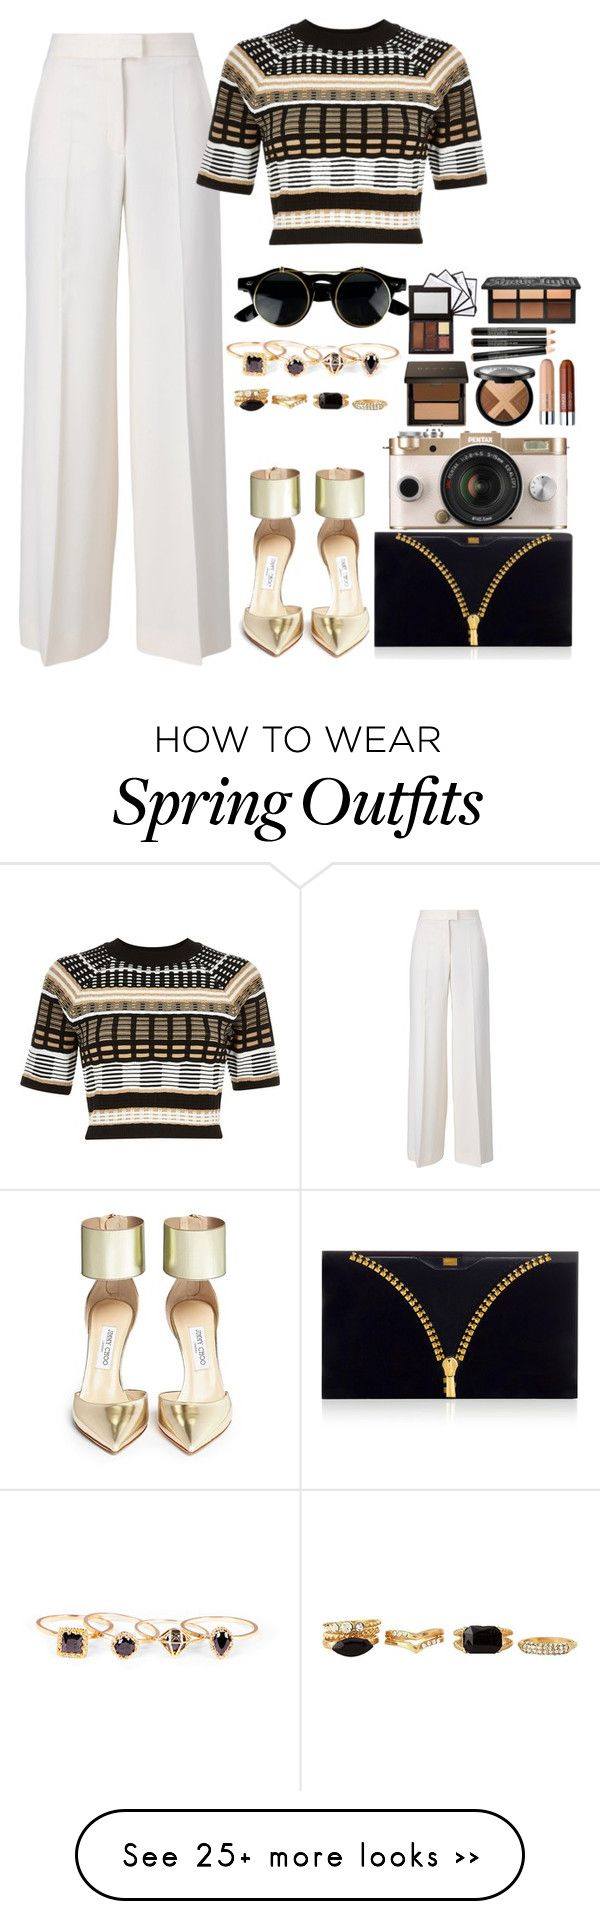 """""""Untitled #894"""" by abrionna on Polyvore featuring STELLA McCARTNEY, River Island, Jimmy Choo, Charlotte Olympia, Sole Society, Charlotte Russe and Urban Outfitters"""